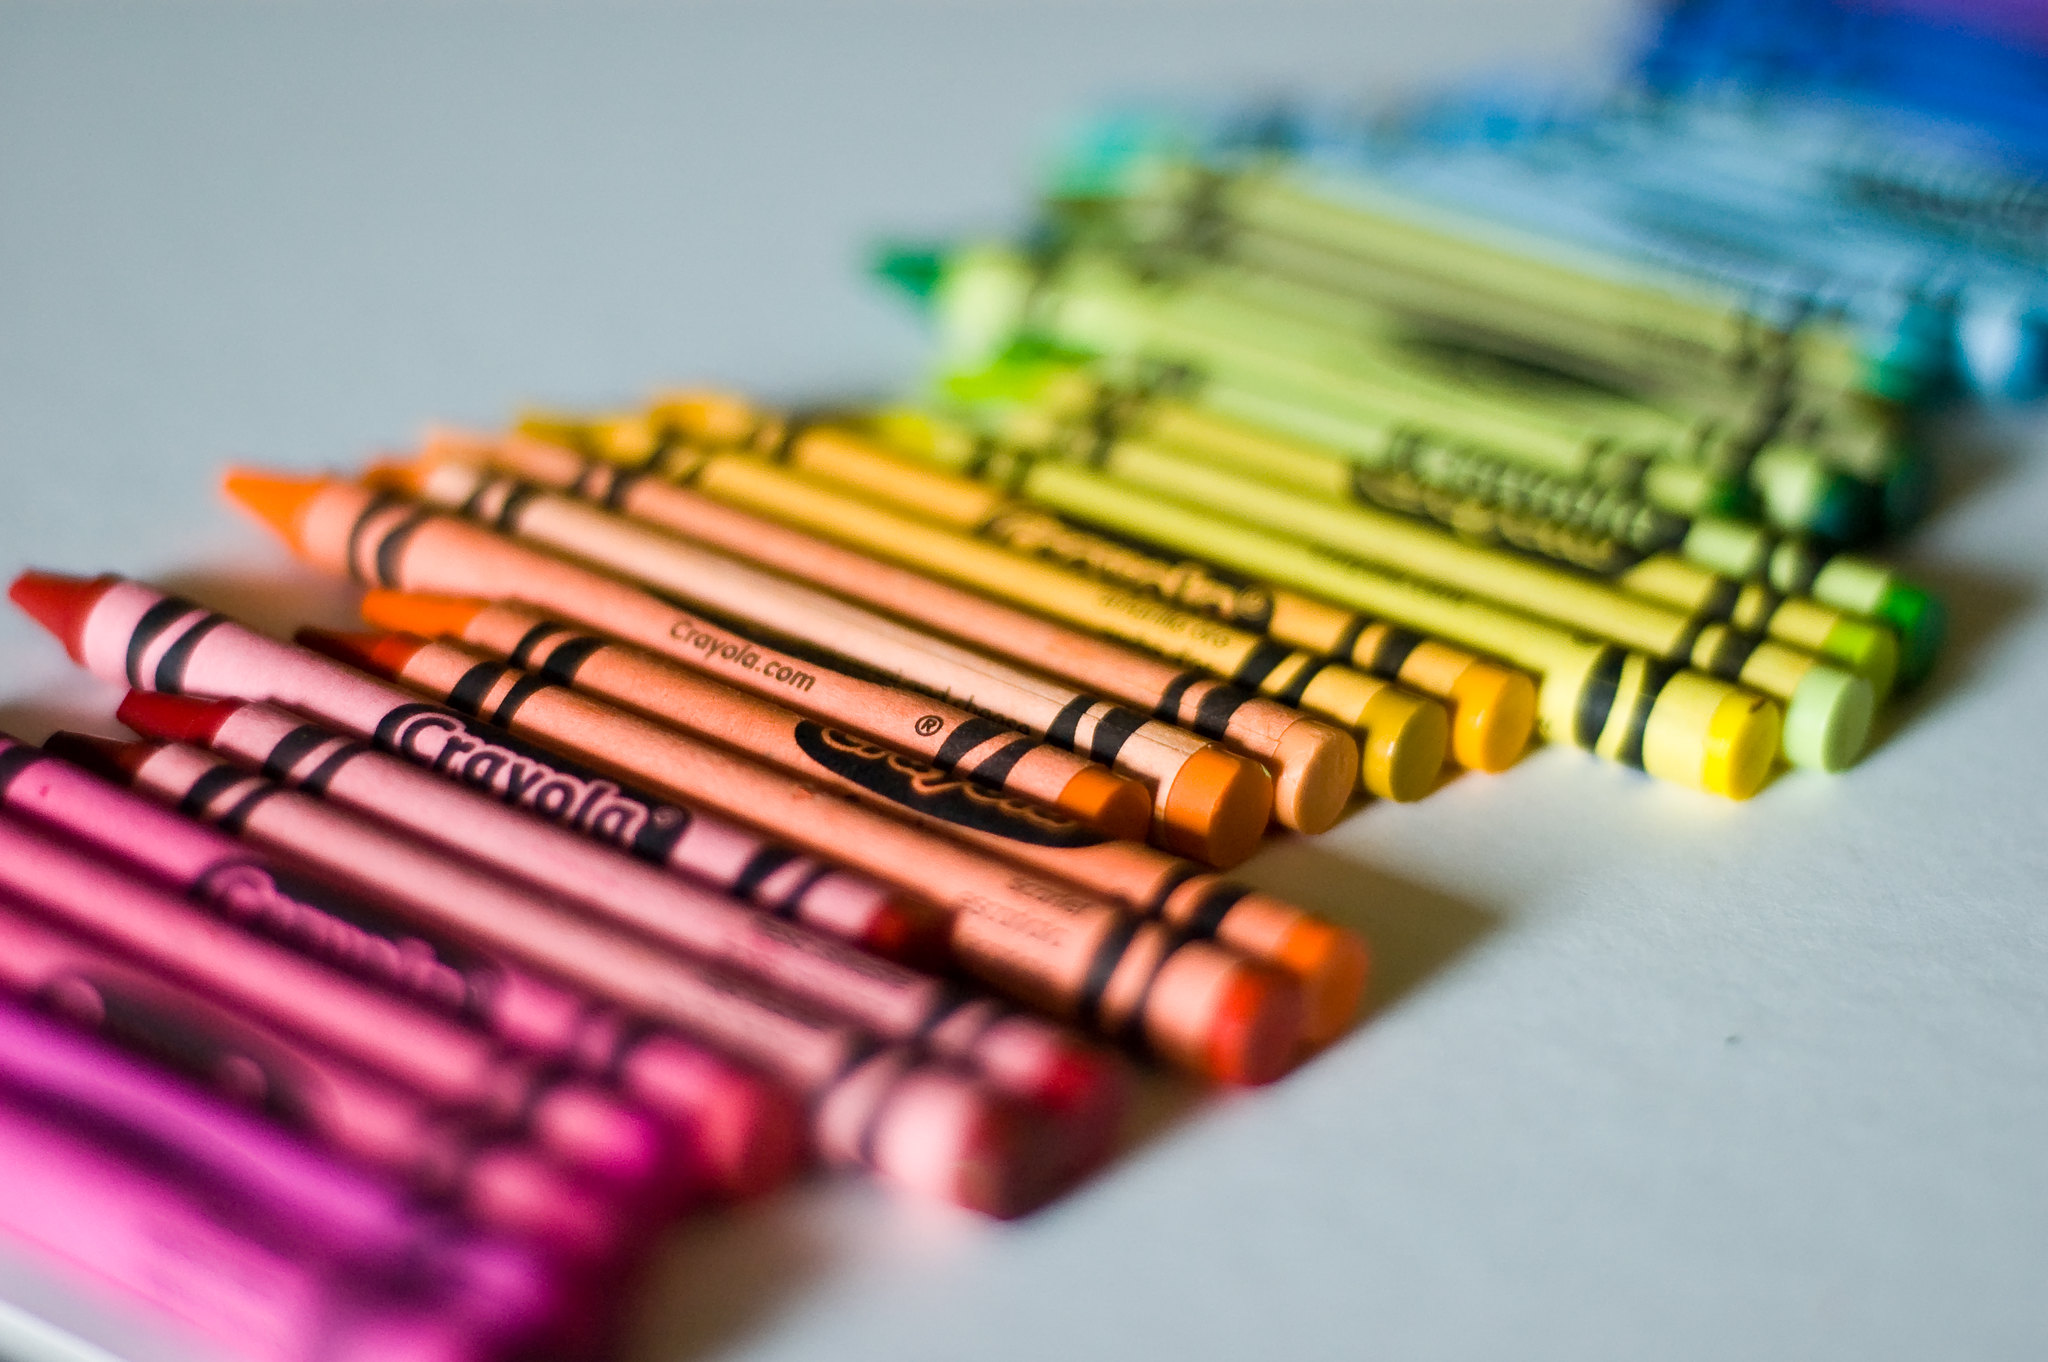 Crayons arranged on a table in rainbow order